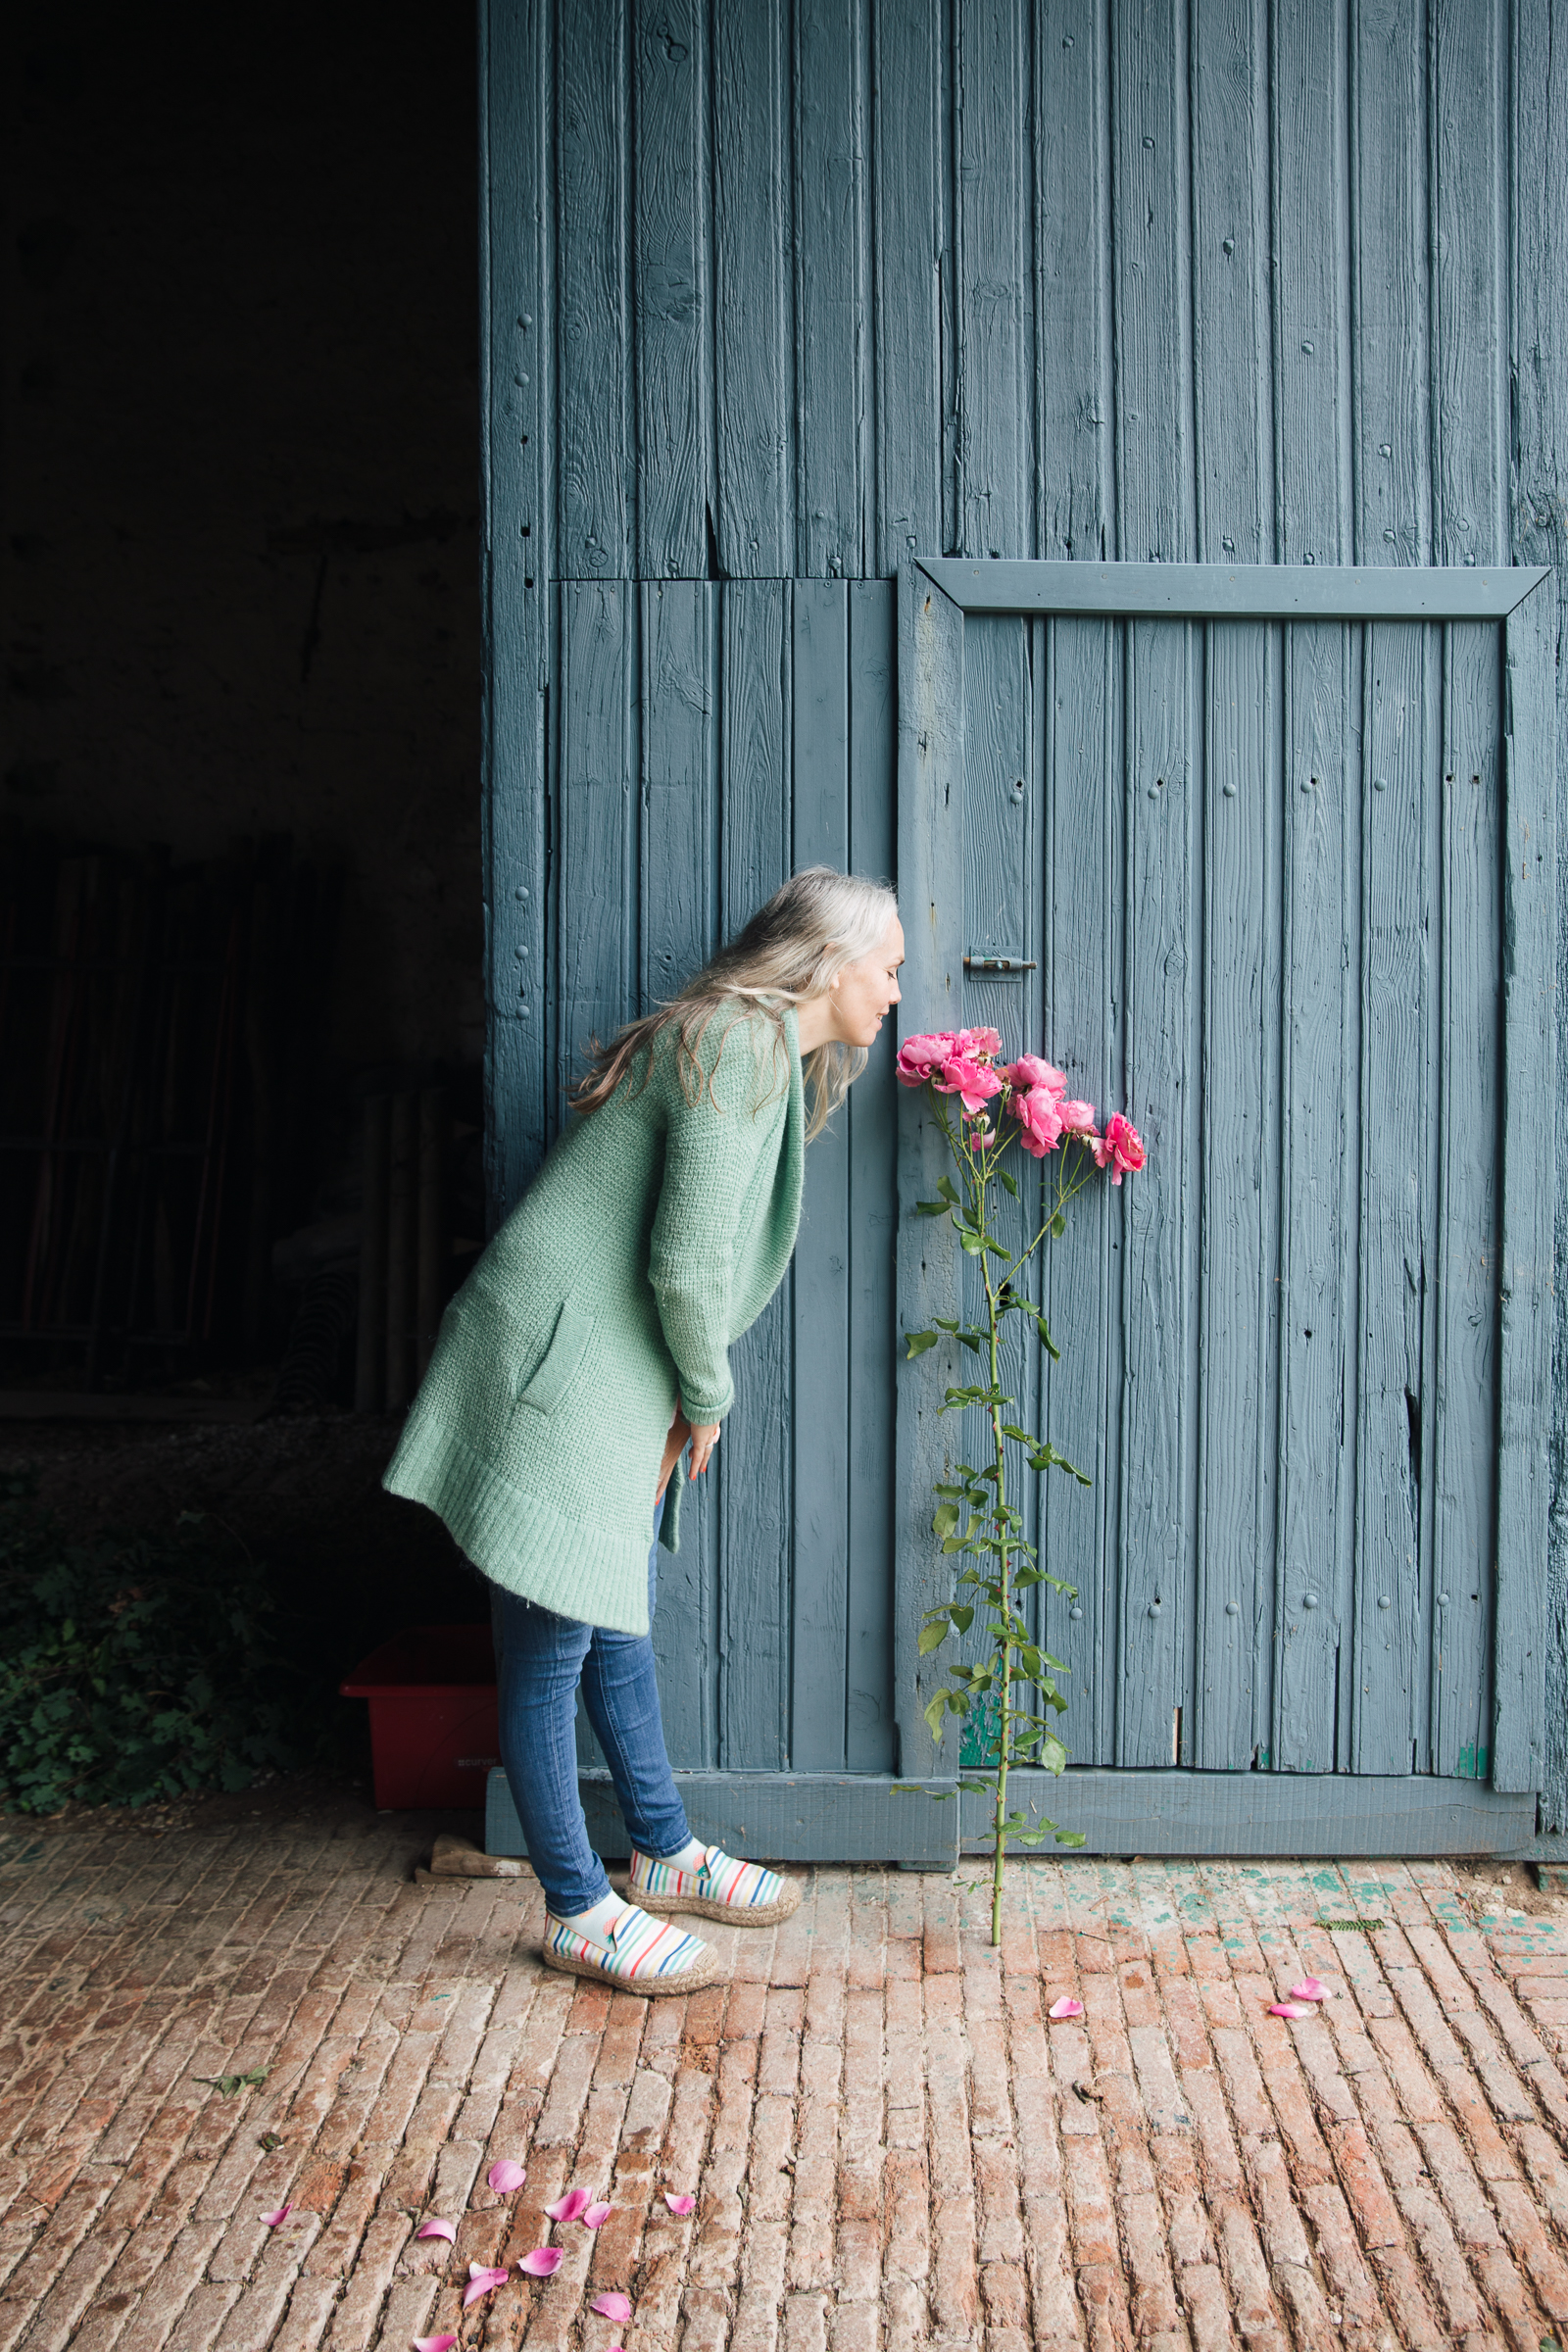 Xanthe admiring the super long-stemmed roses we were able to cut from the garden